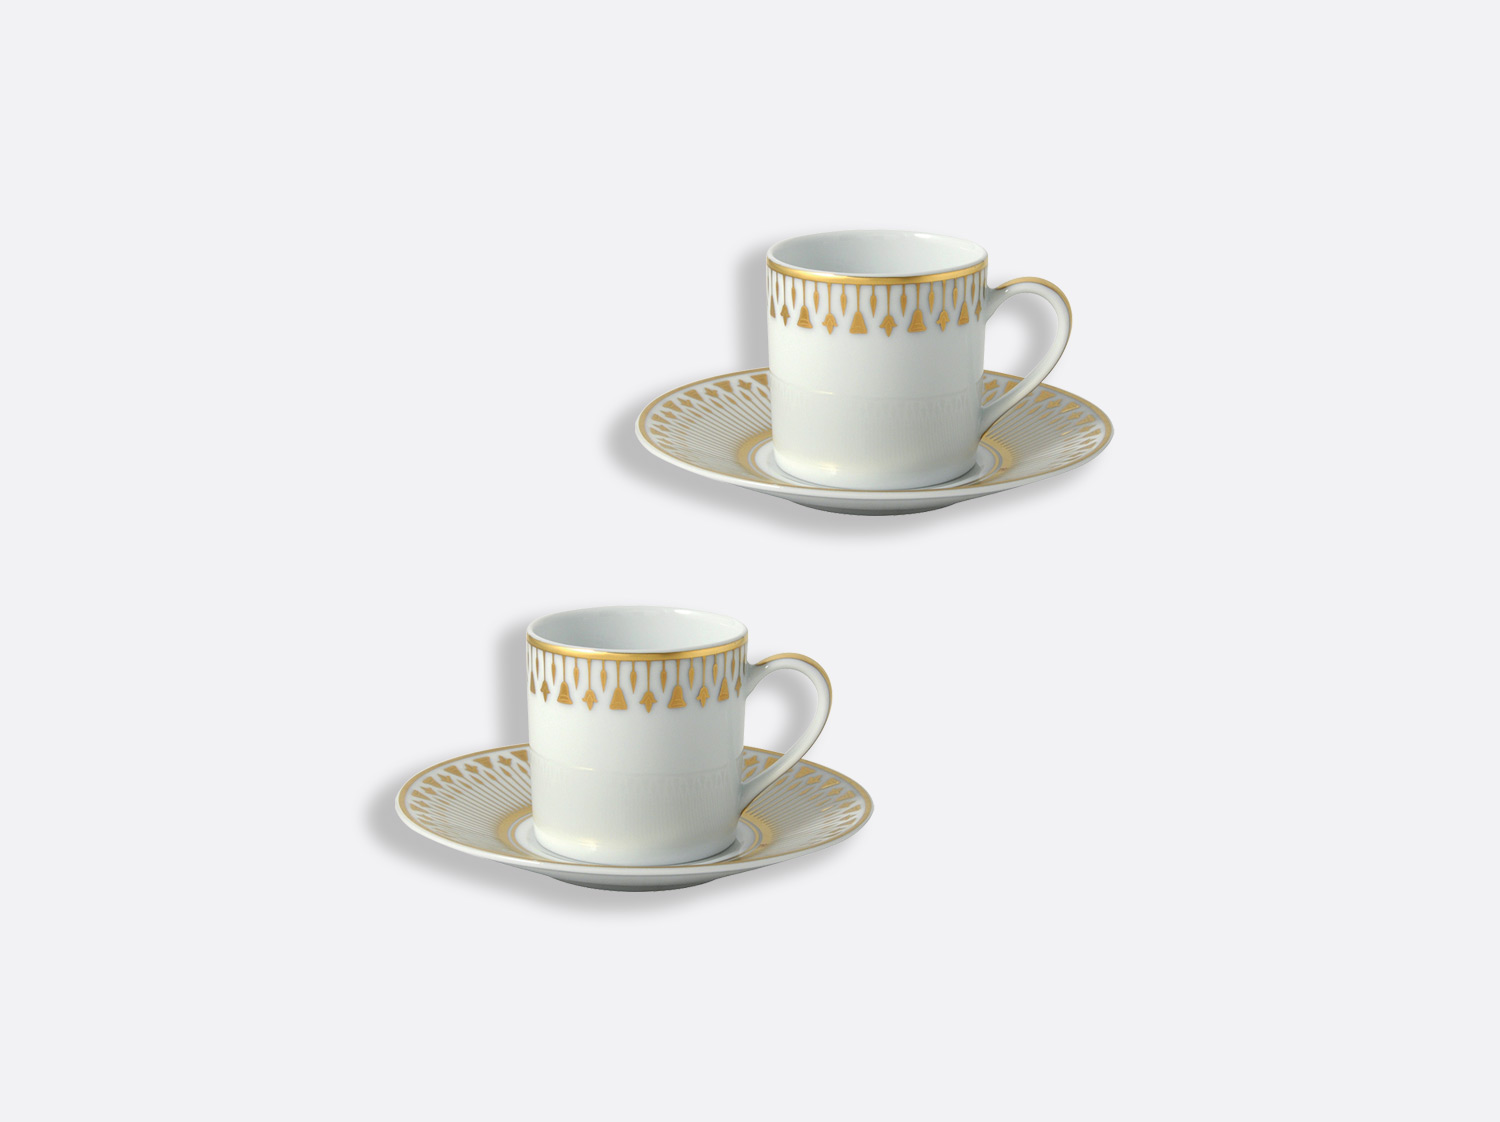 China Espresso cup and saucer gift box - 8 cl - Set of 2 of the collection Soleil levant | Bernardaud